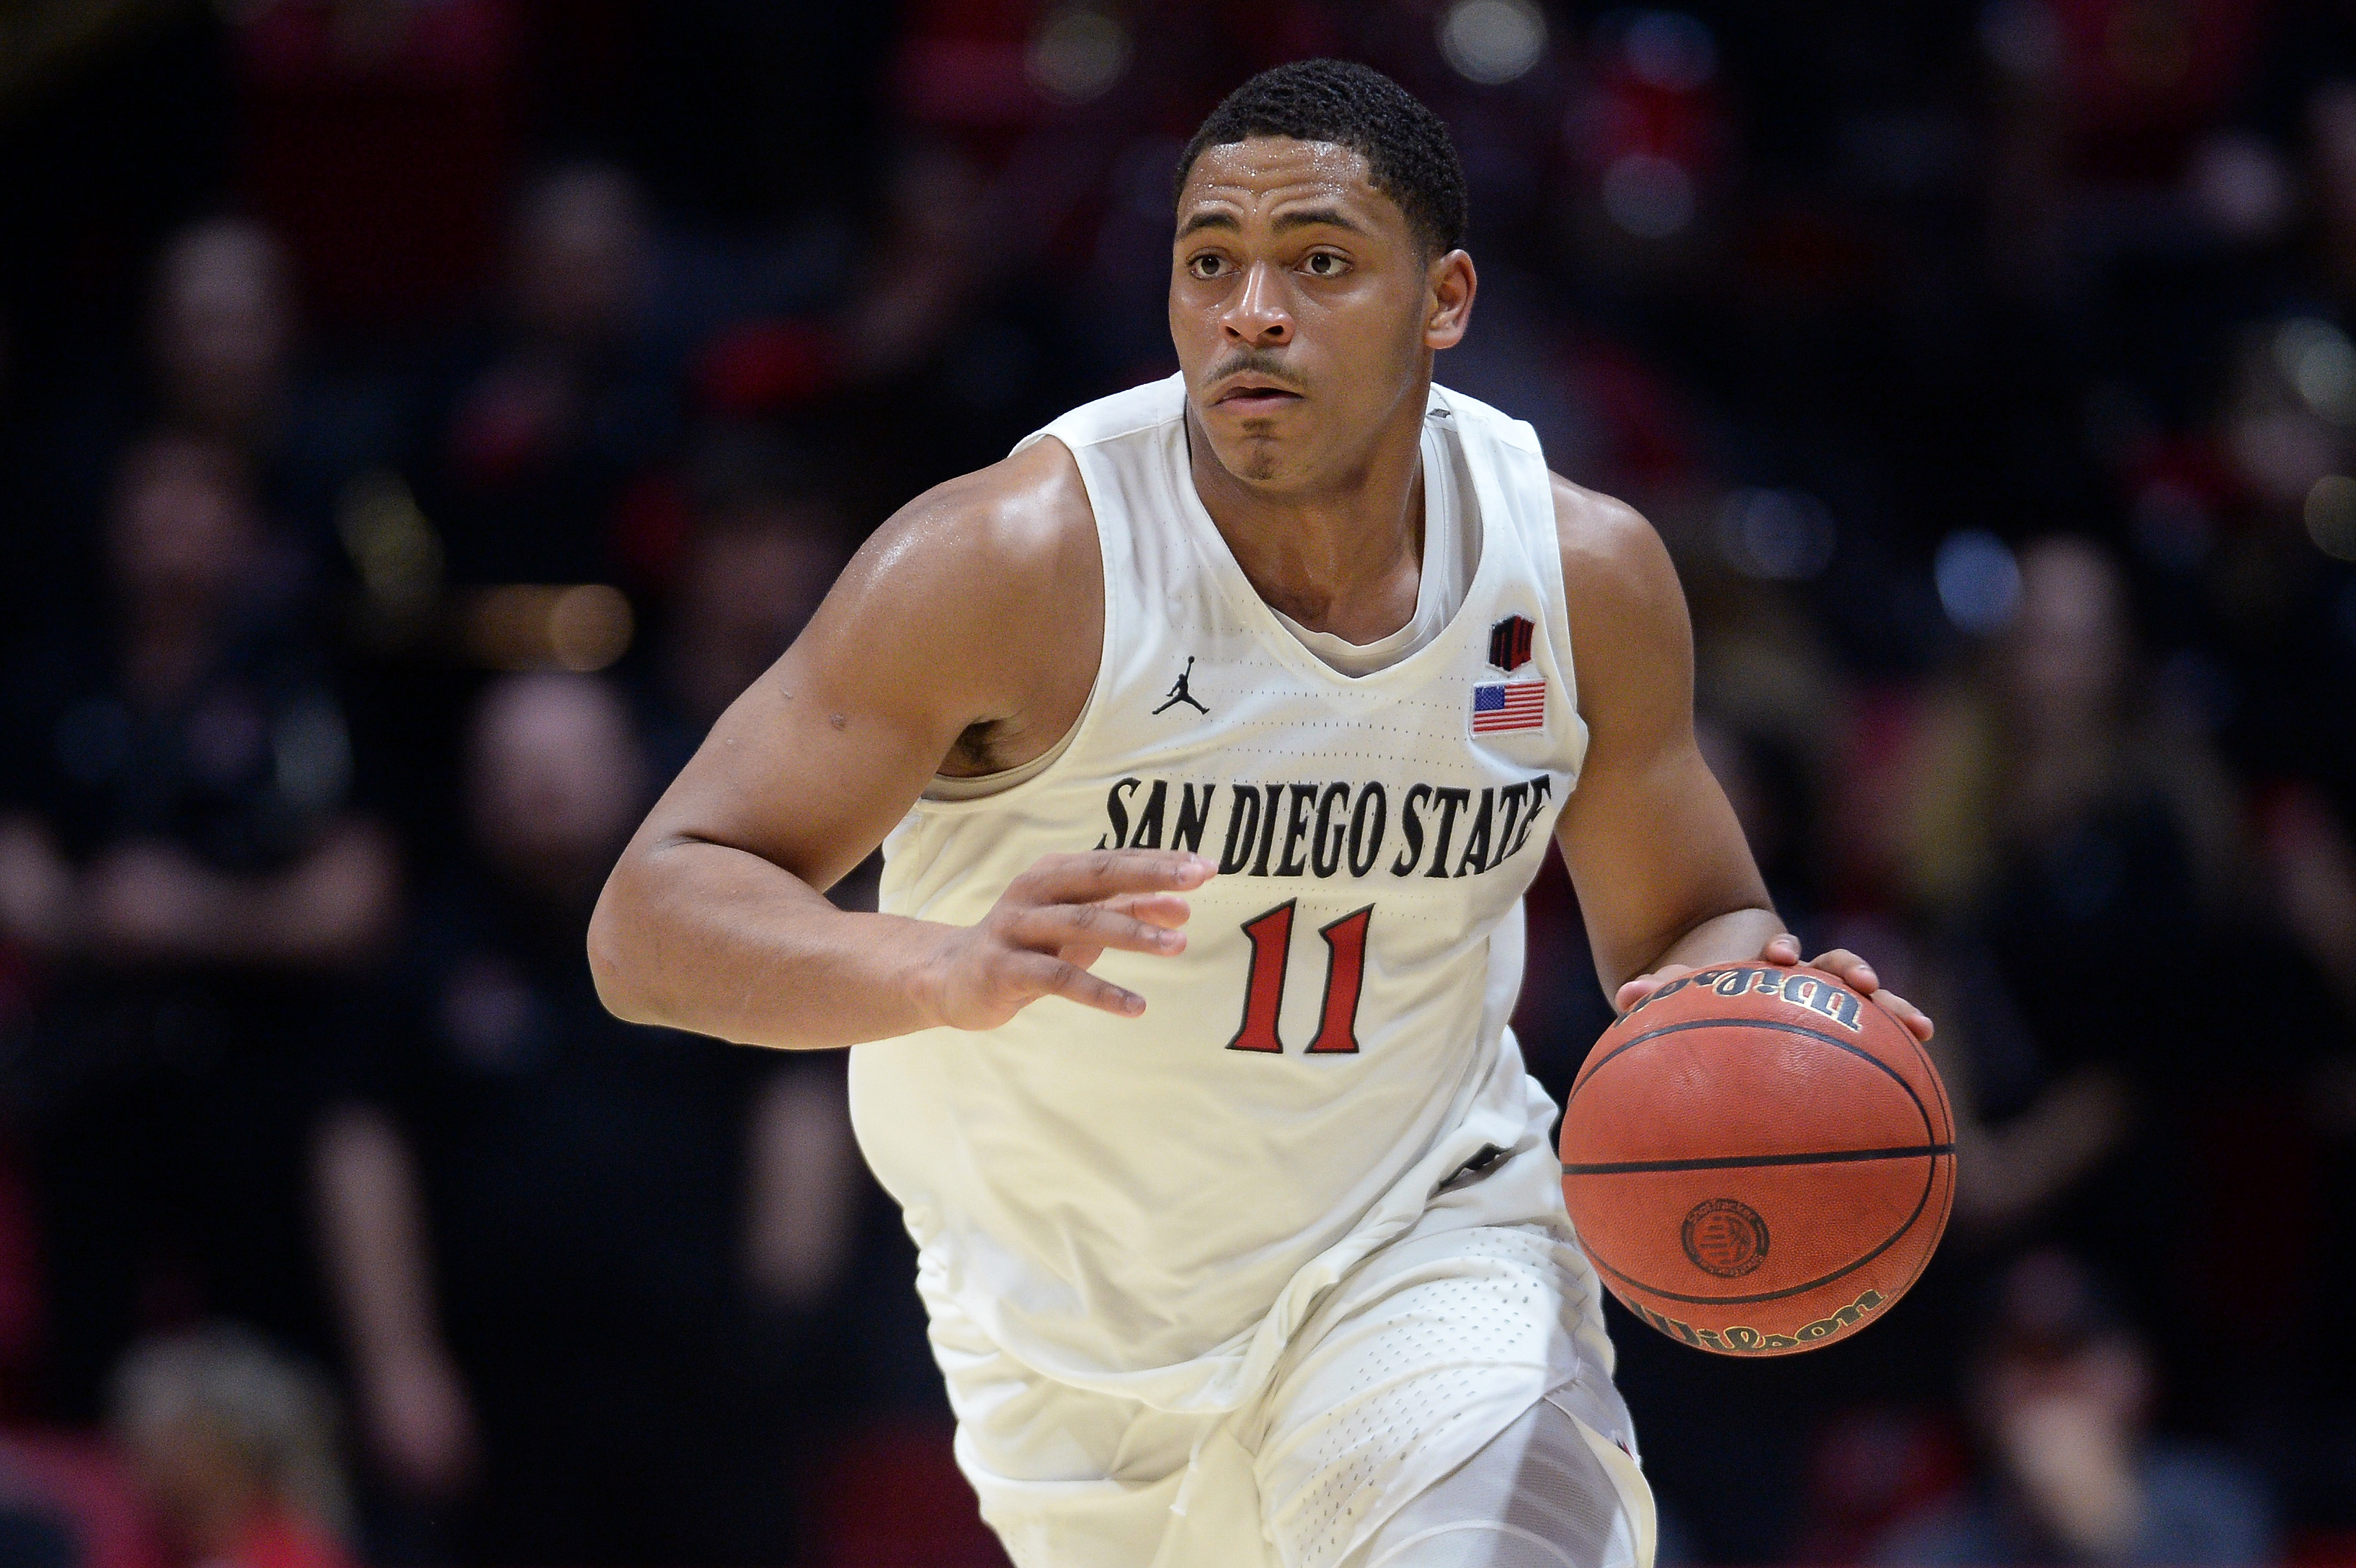 Feb 11, 2020; San Diego, California, USA; San Diego State Aztecs forward Matt Mitchell (11) dribbles during the second half against the New Mexico Lobos at Viejas Arena. Mandatory Credit: